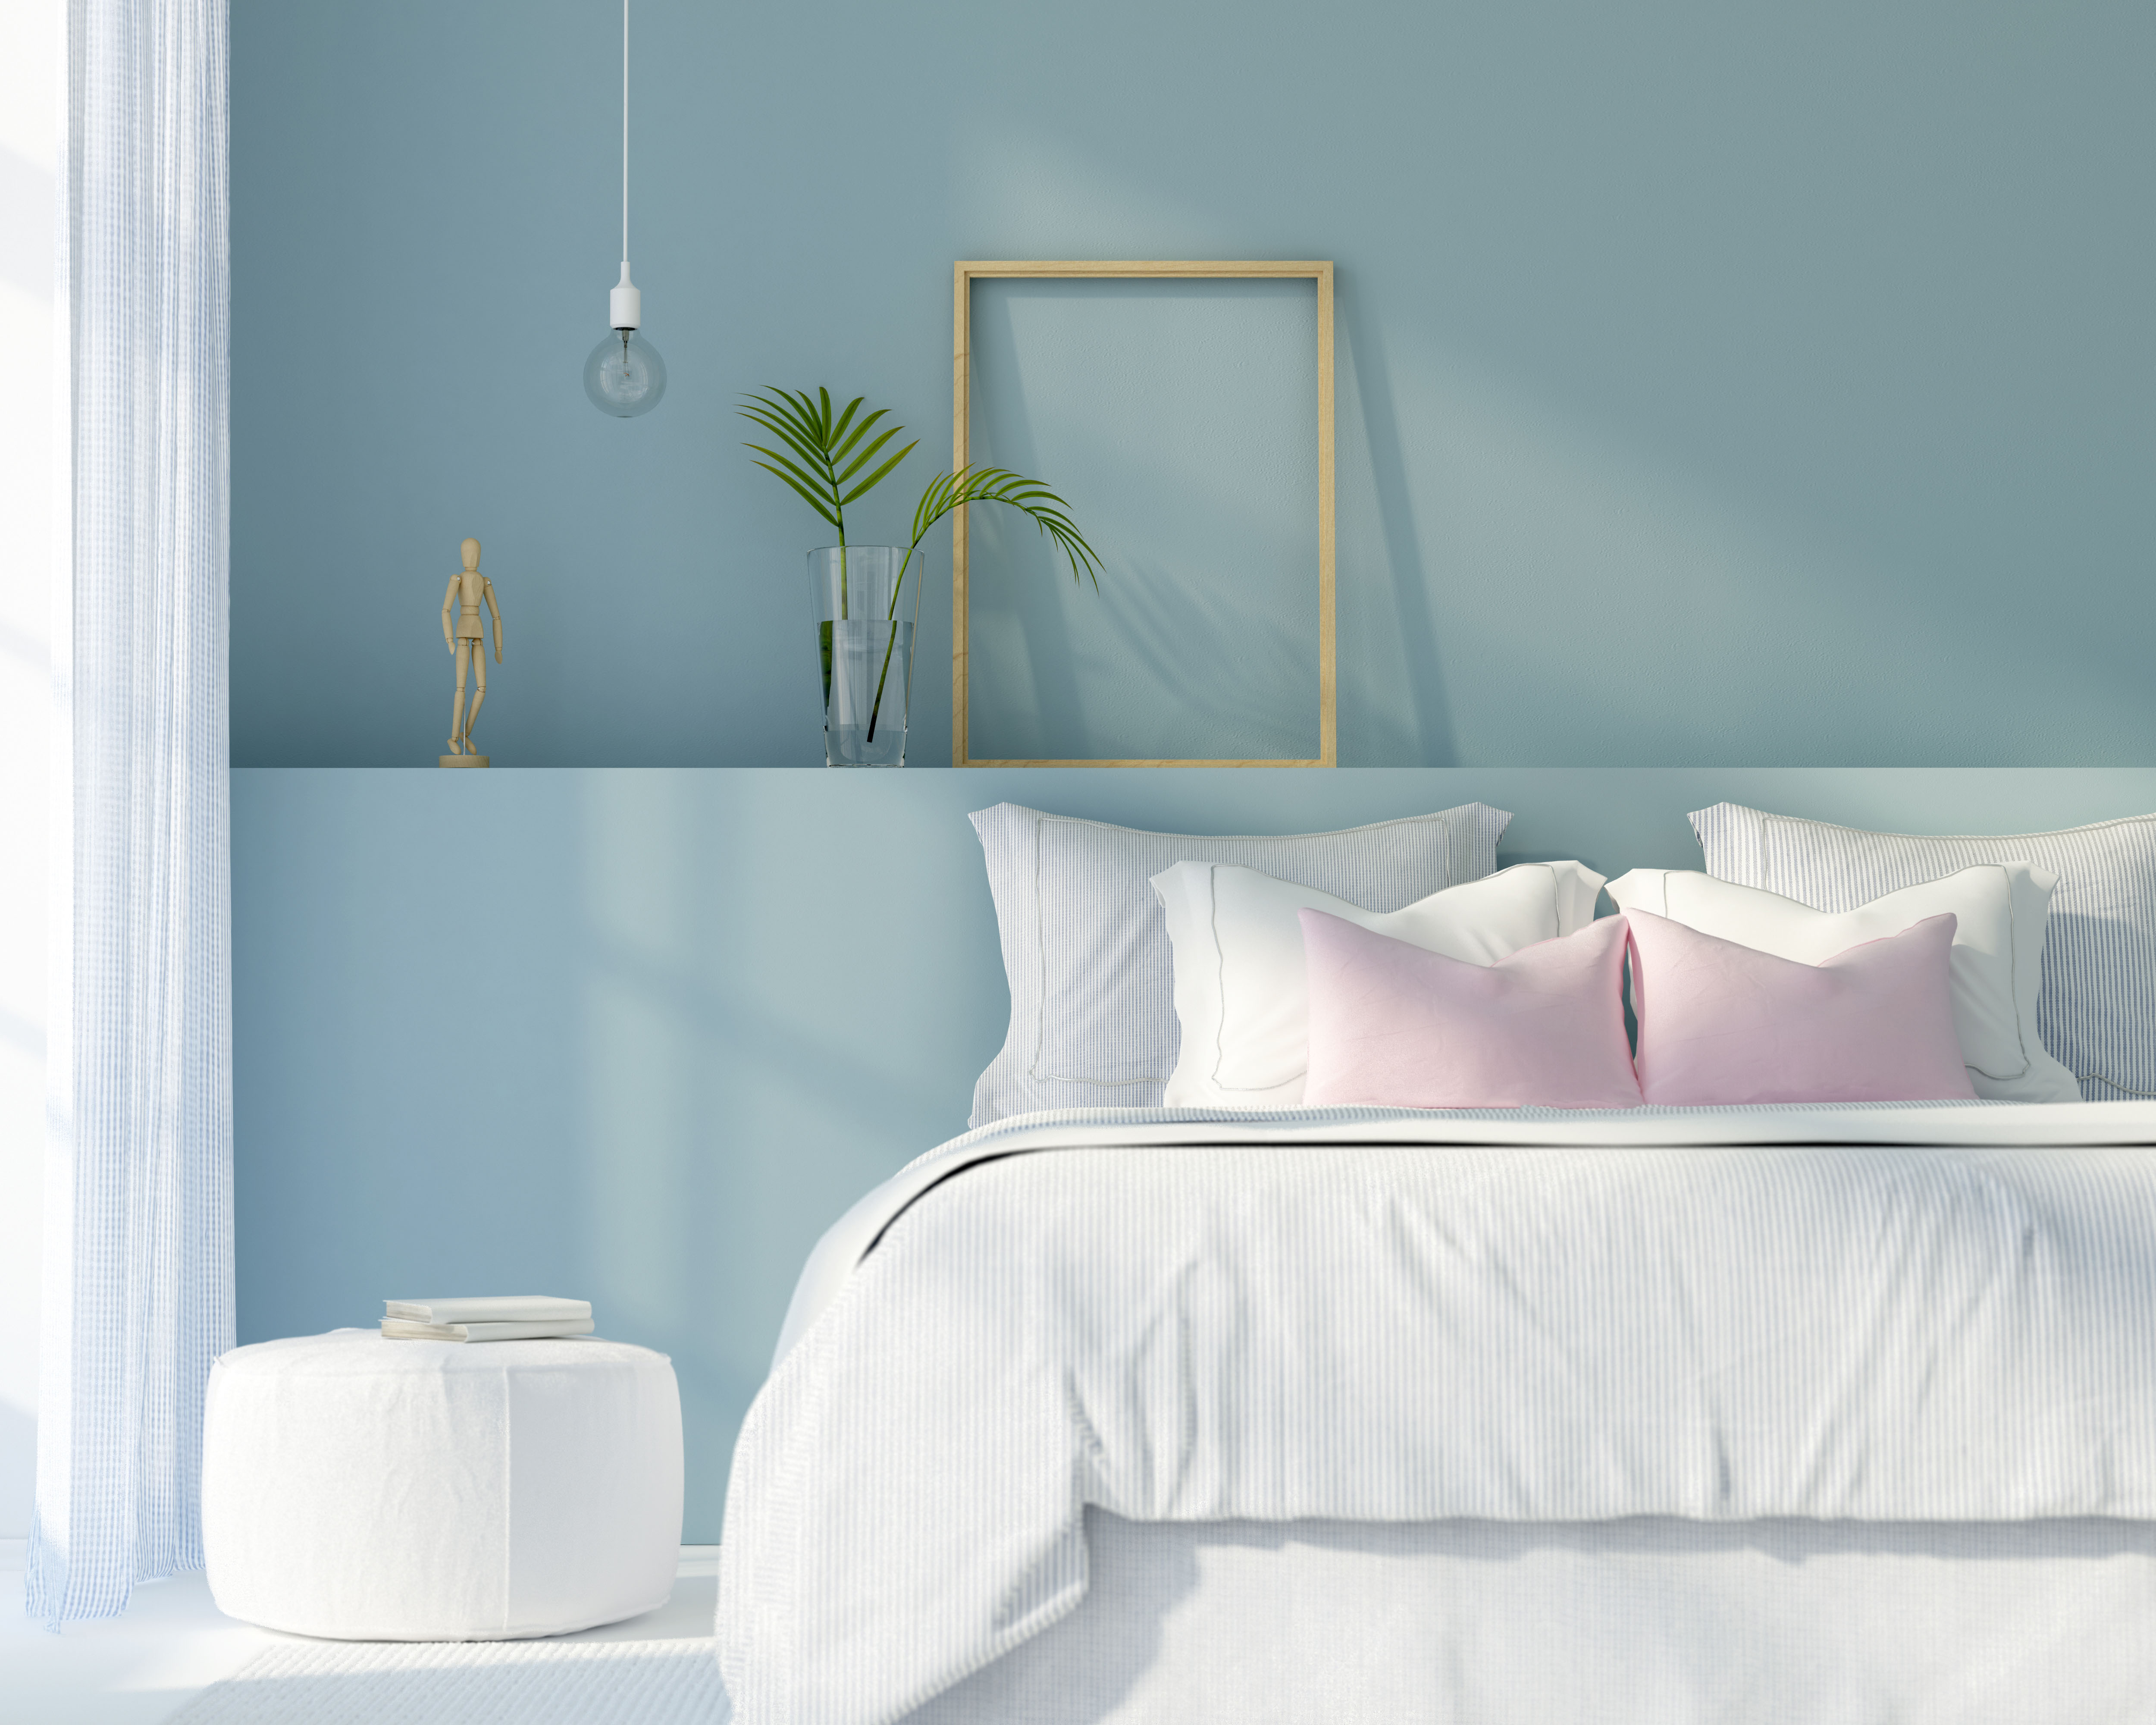 Bedroom in white and blue color